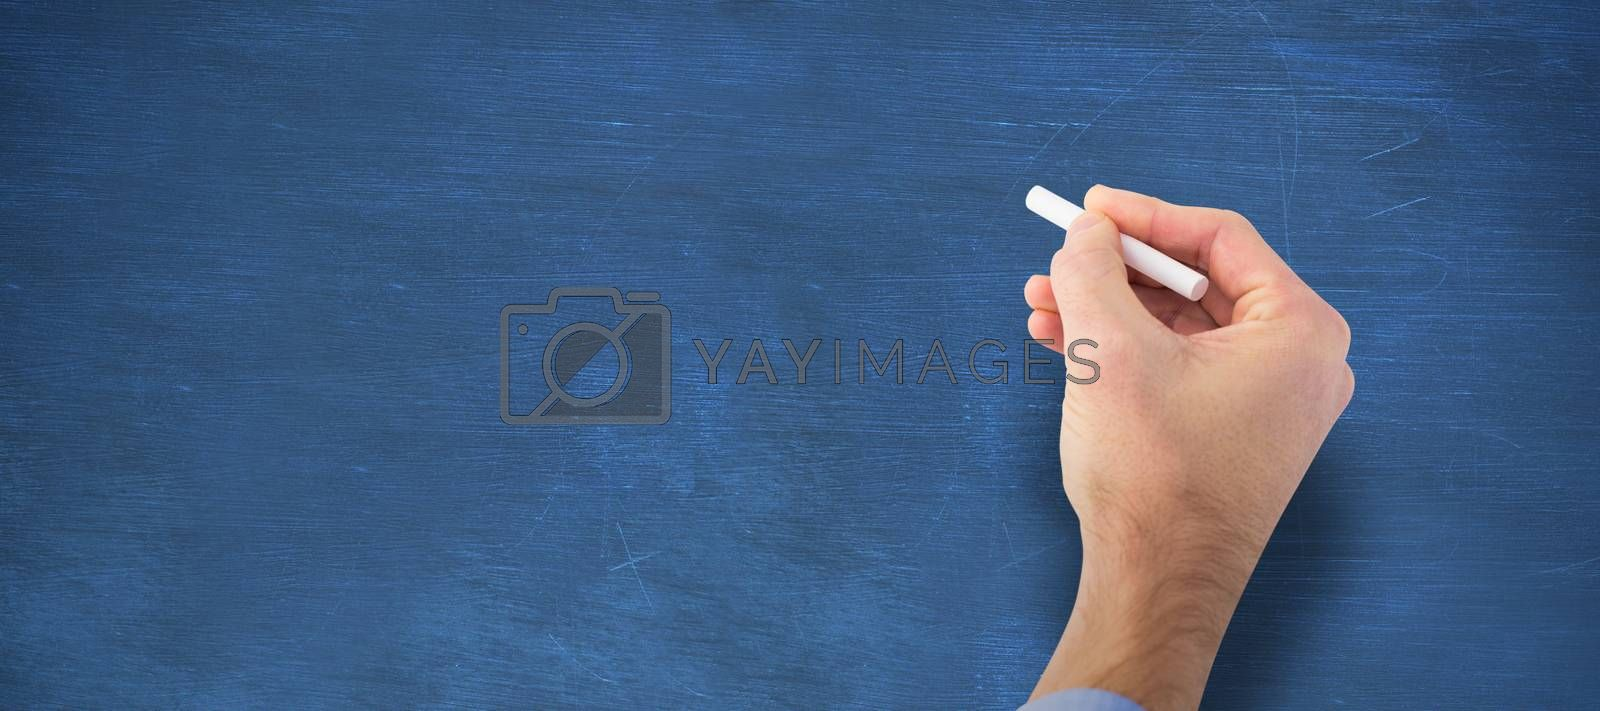 Composite image of hand writing with a white chalk by Wavebreakmedia